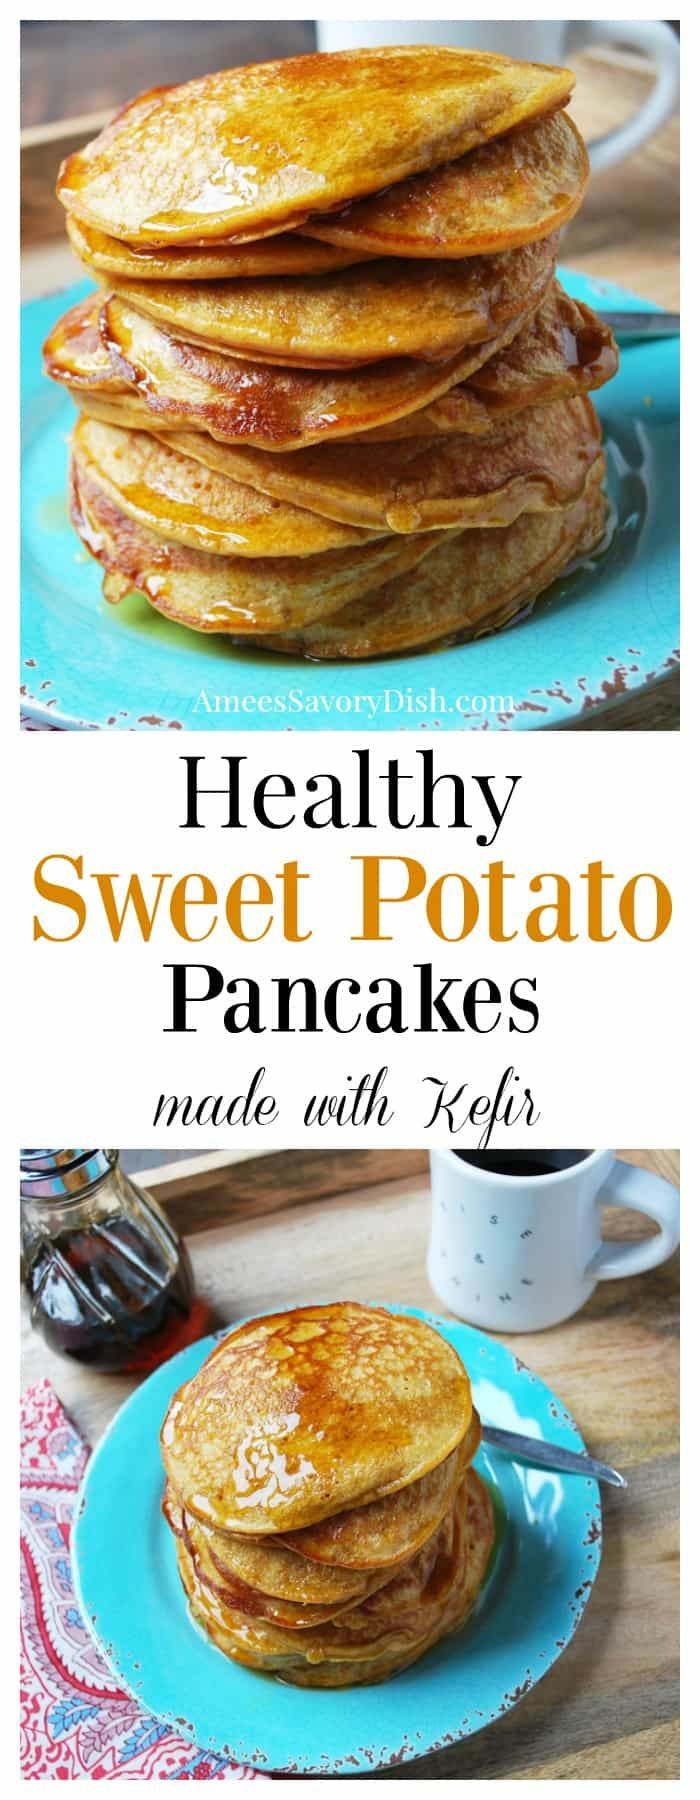 1091 best amee 39 s savory dish recipes images on pinterest for Recipes for pancakes sweet and savory